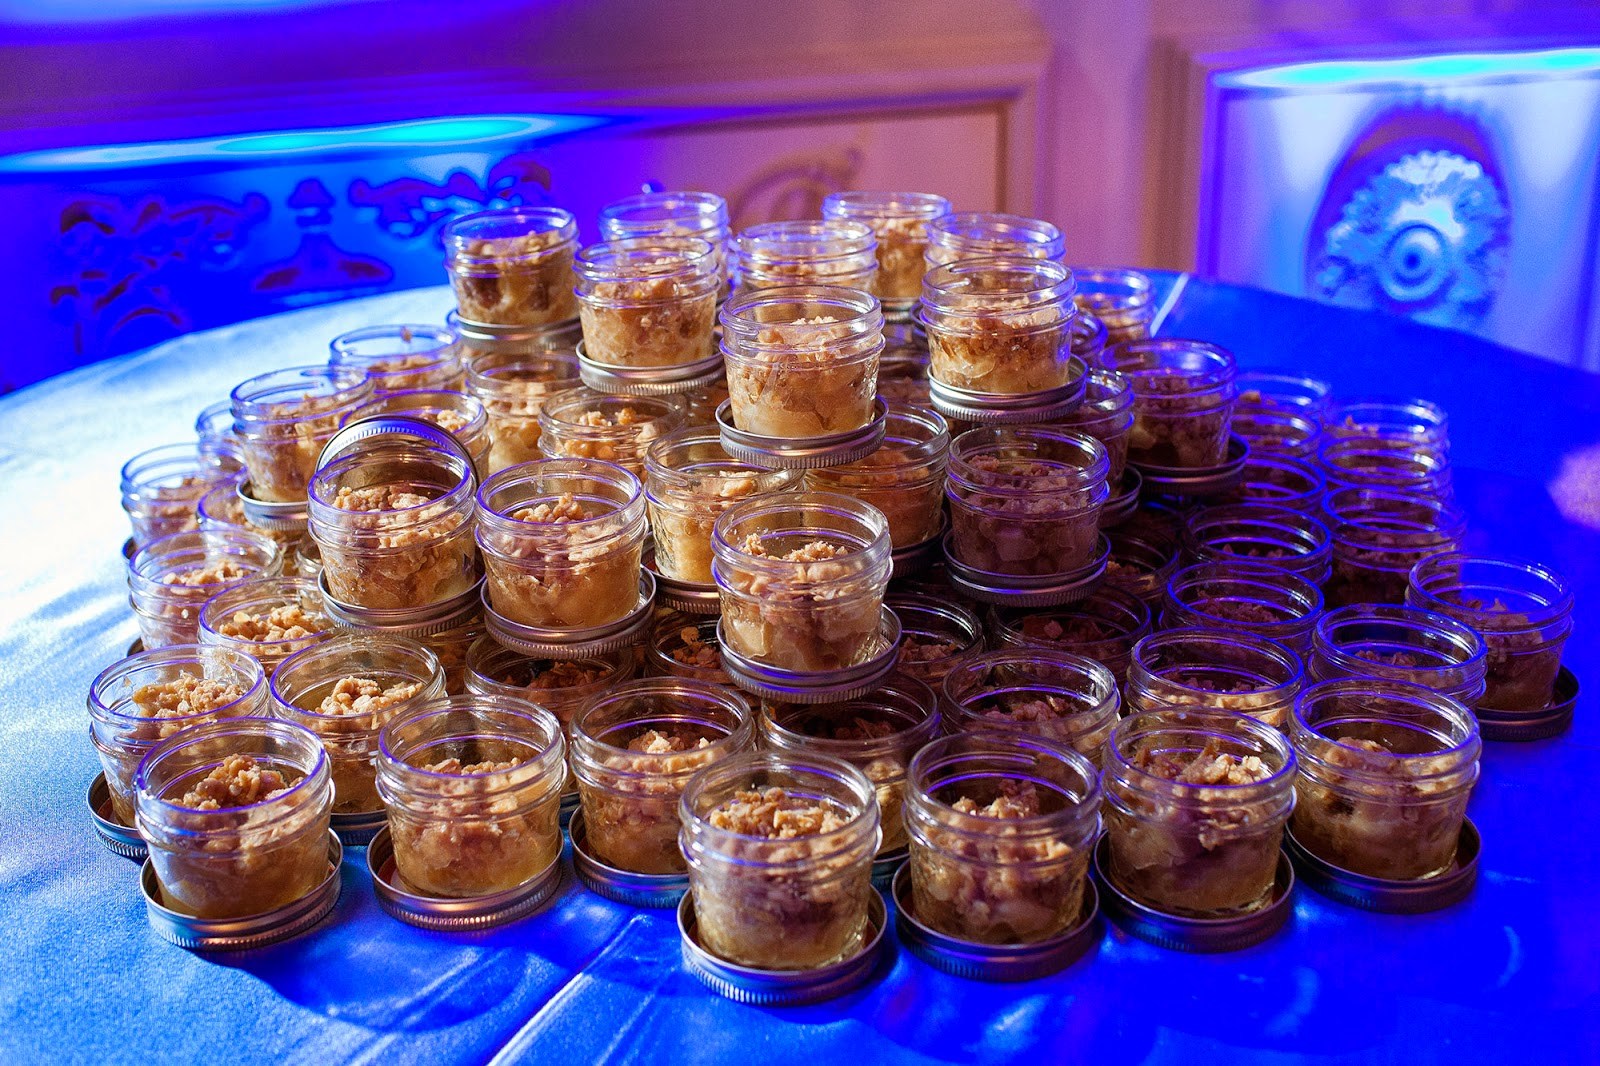 ... hot chocolatefavors for guests – amaretto flavored, no less